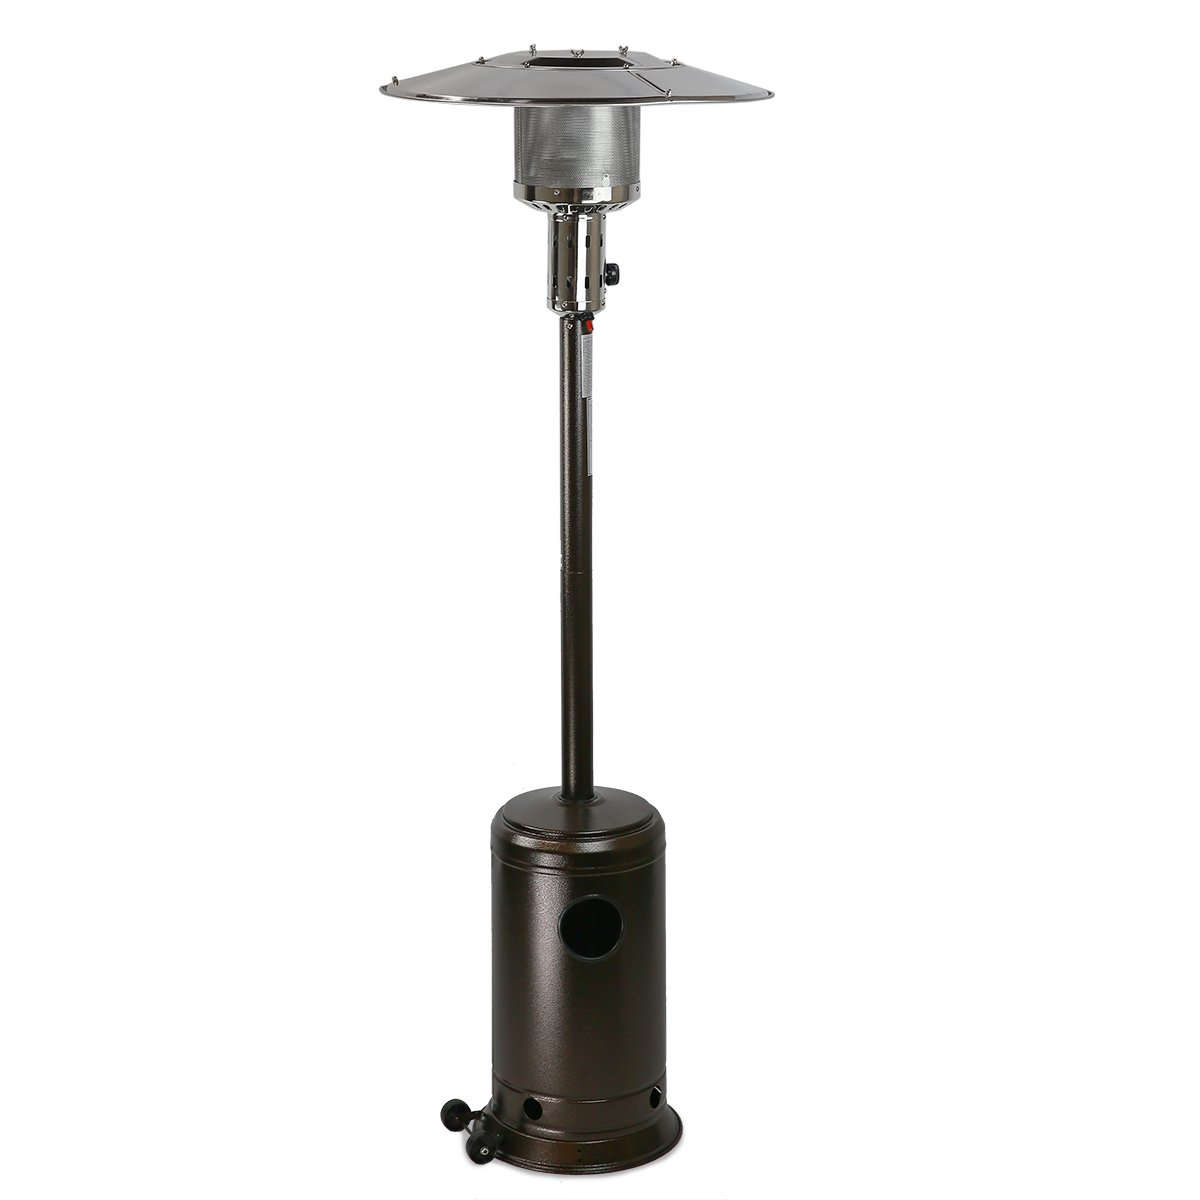 Amazon.com : XtremepowerUS 48, 000 BTU Premium Floor Standing Propane  Outdoor Patio Heater   Mocha 8.5ft : Patio, Lawn U0026 Garden